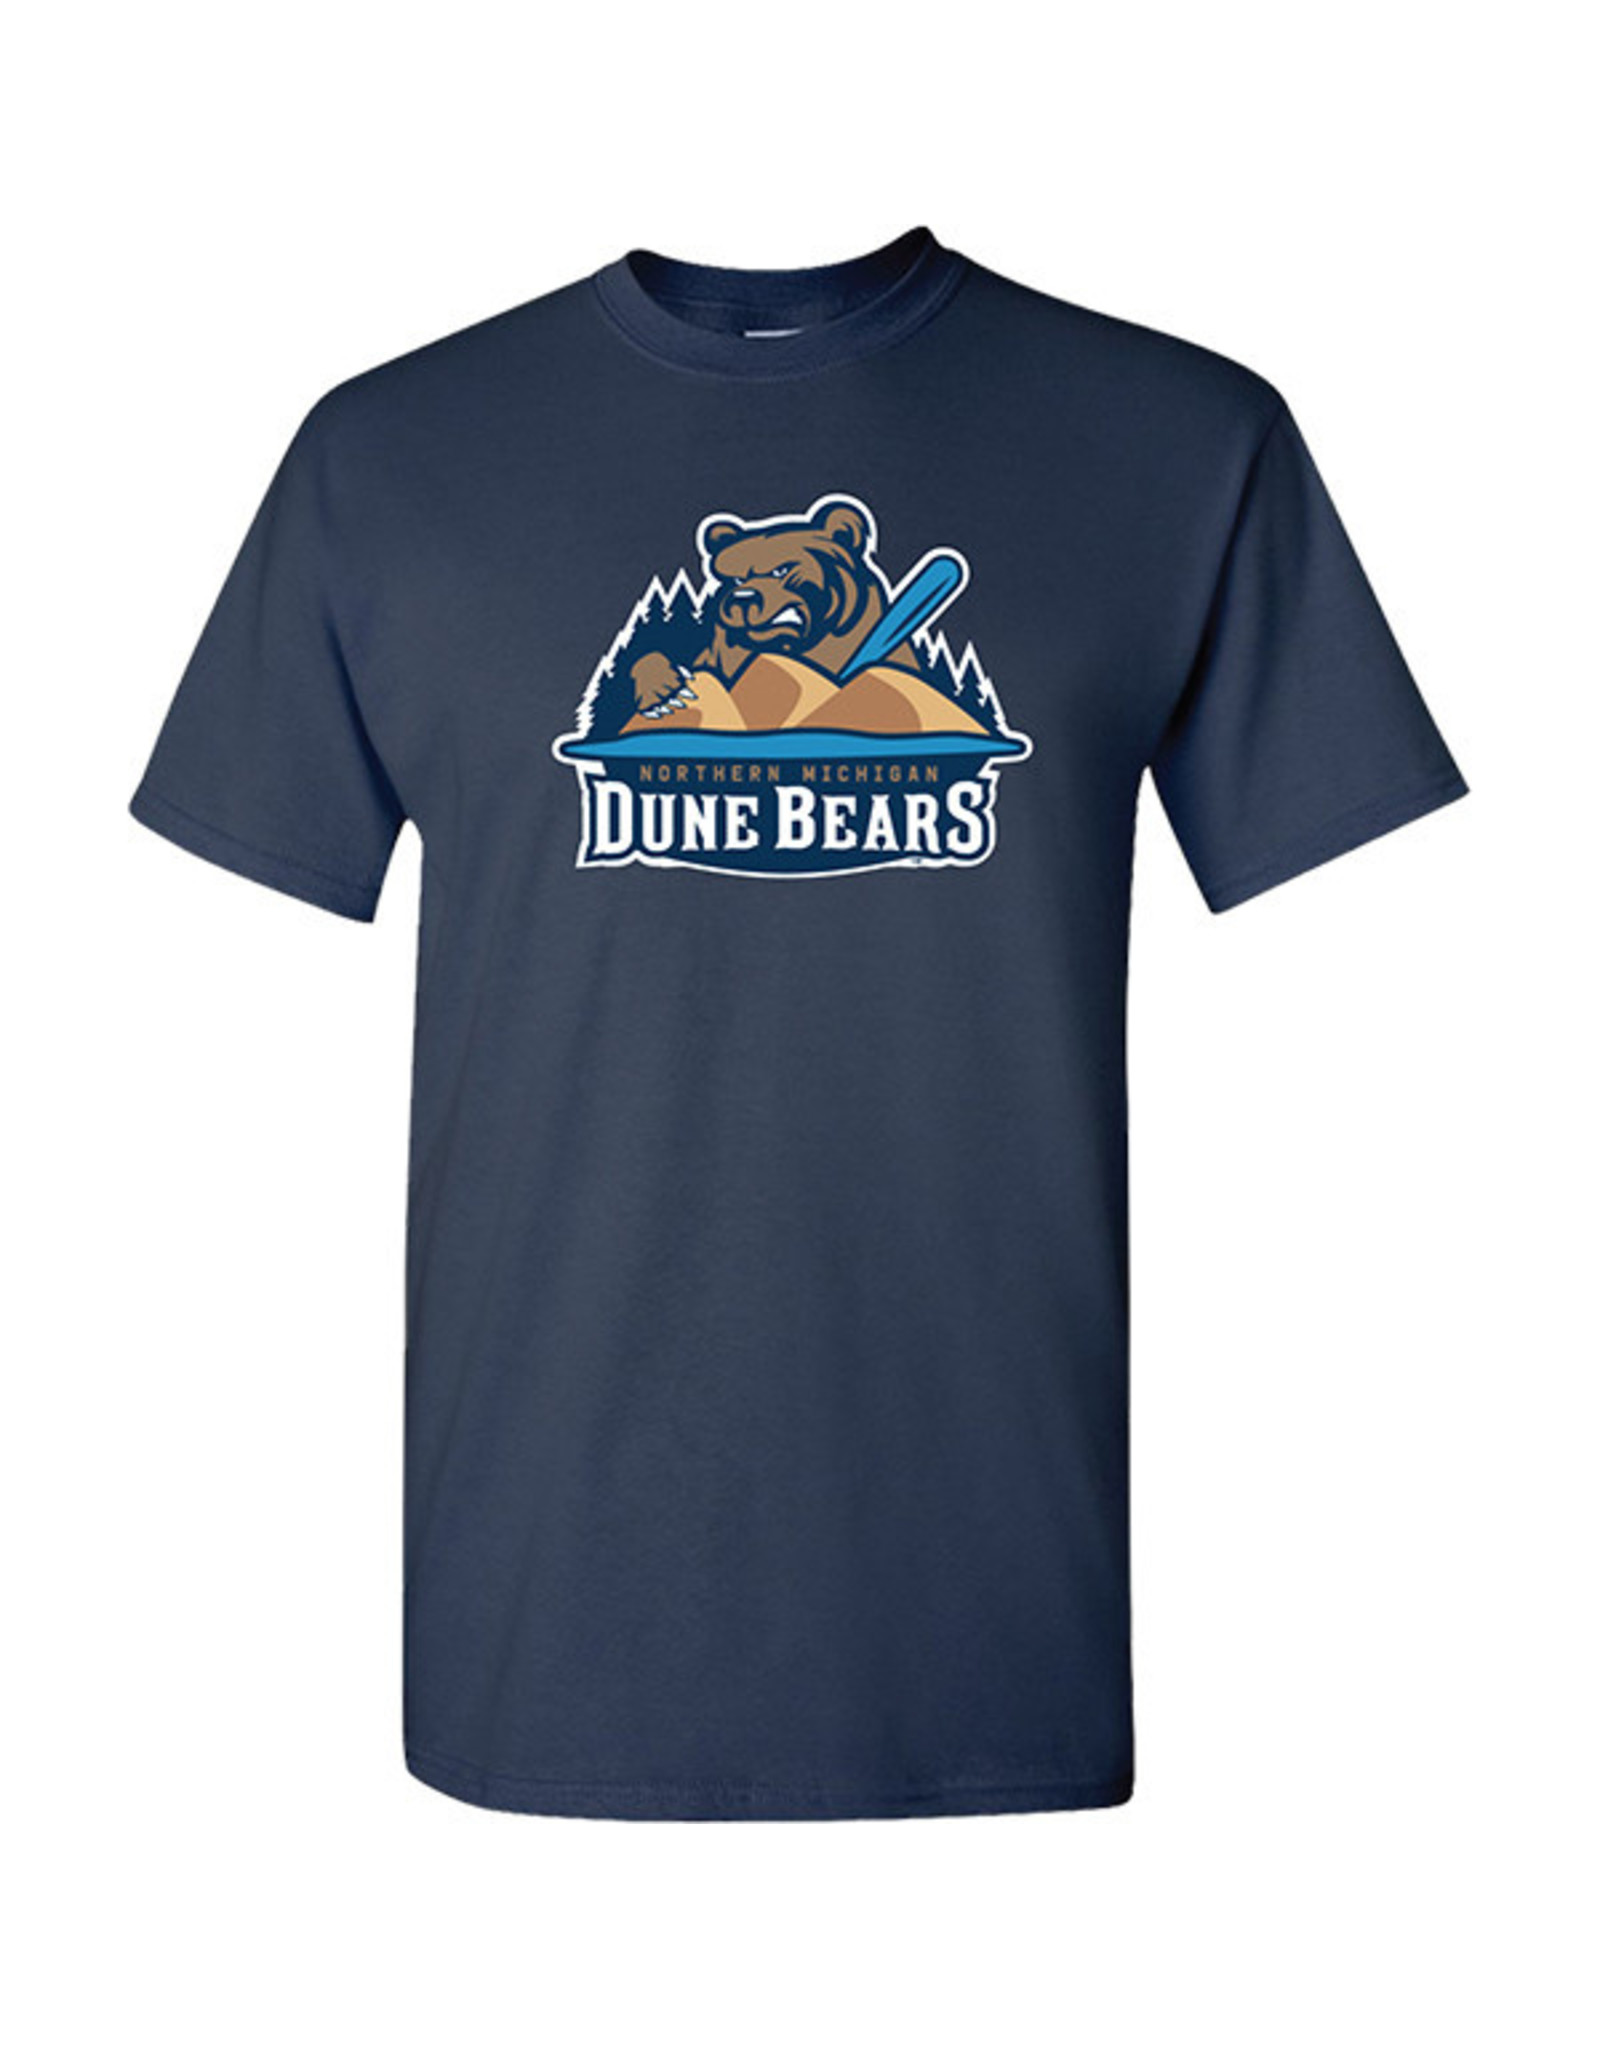 2530 Dune Bears Navy Tee CLEARANCE